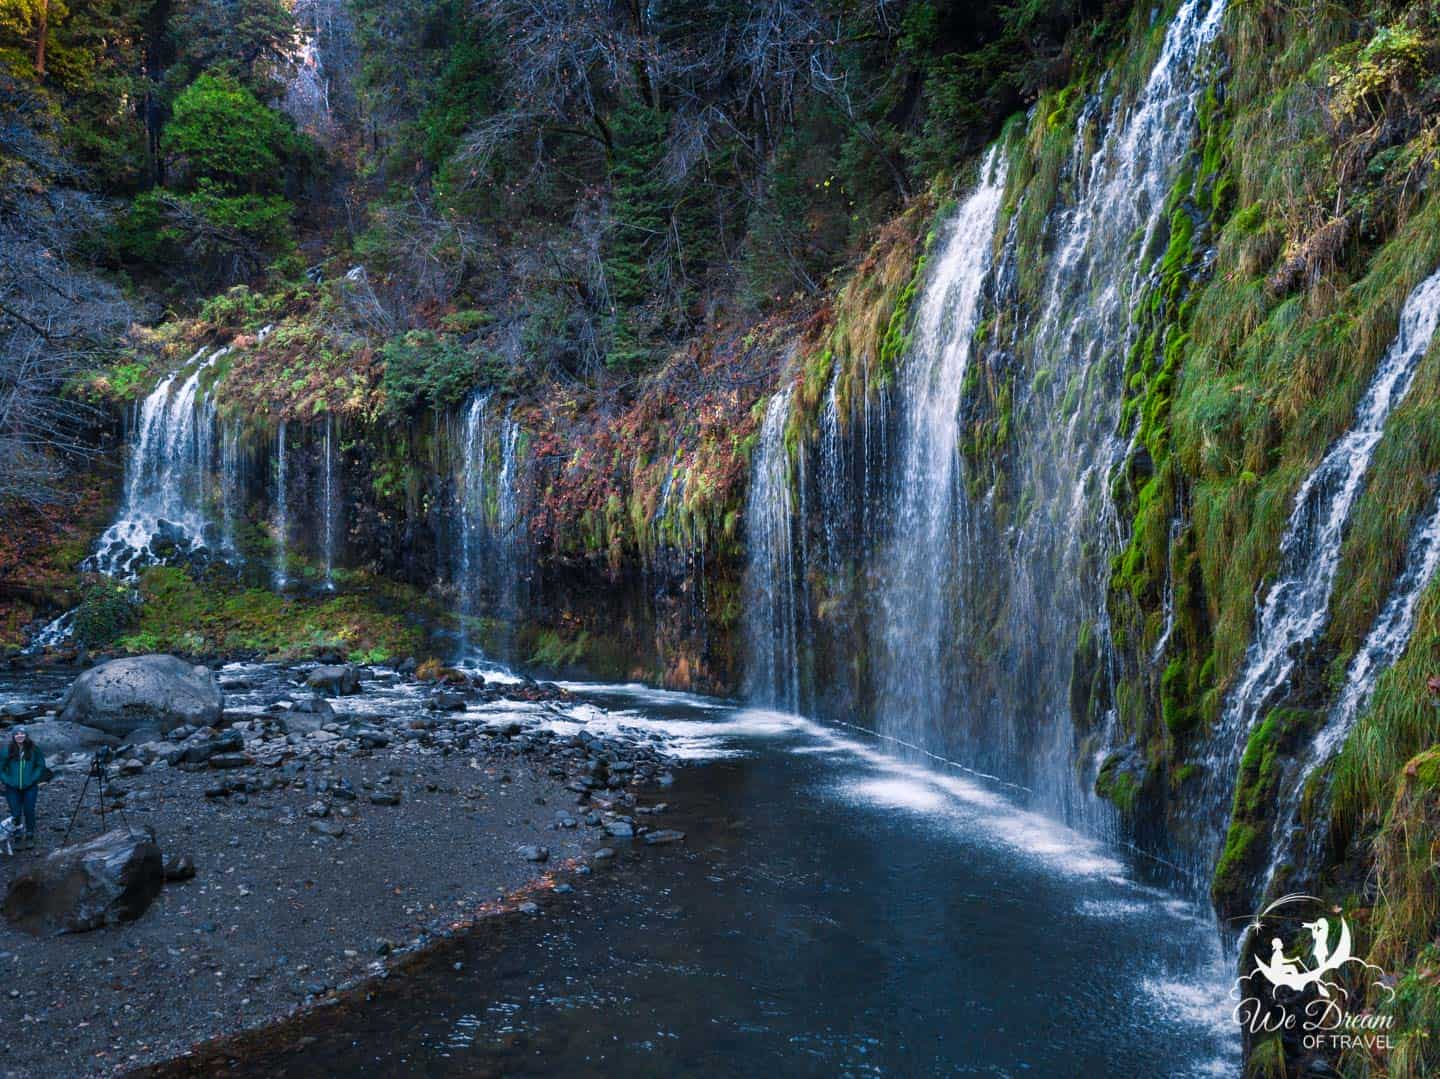 The impressive cascade of Mossbrae Falls is accessed by following train tracks for a mile.